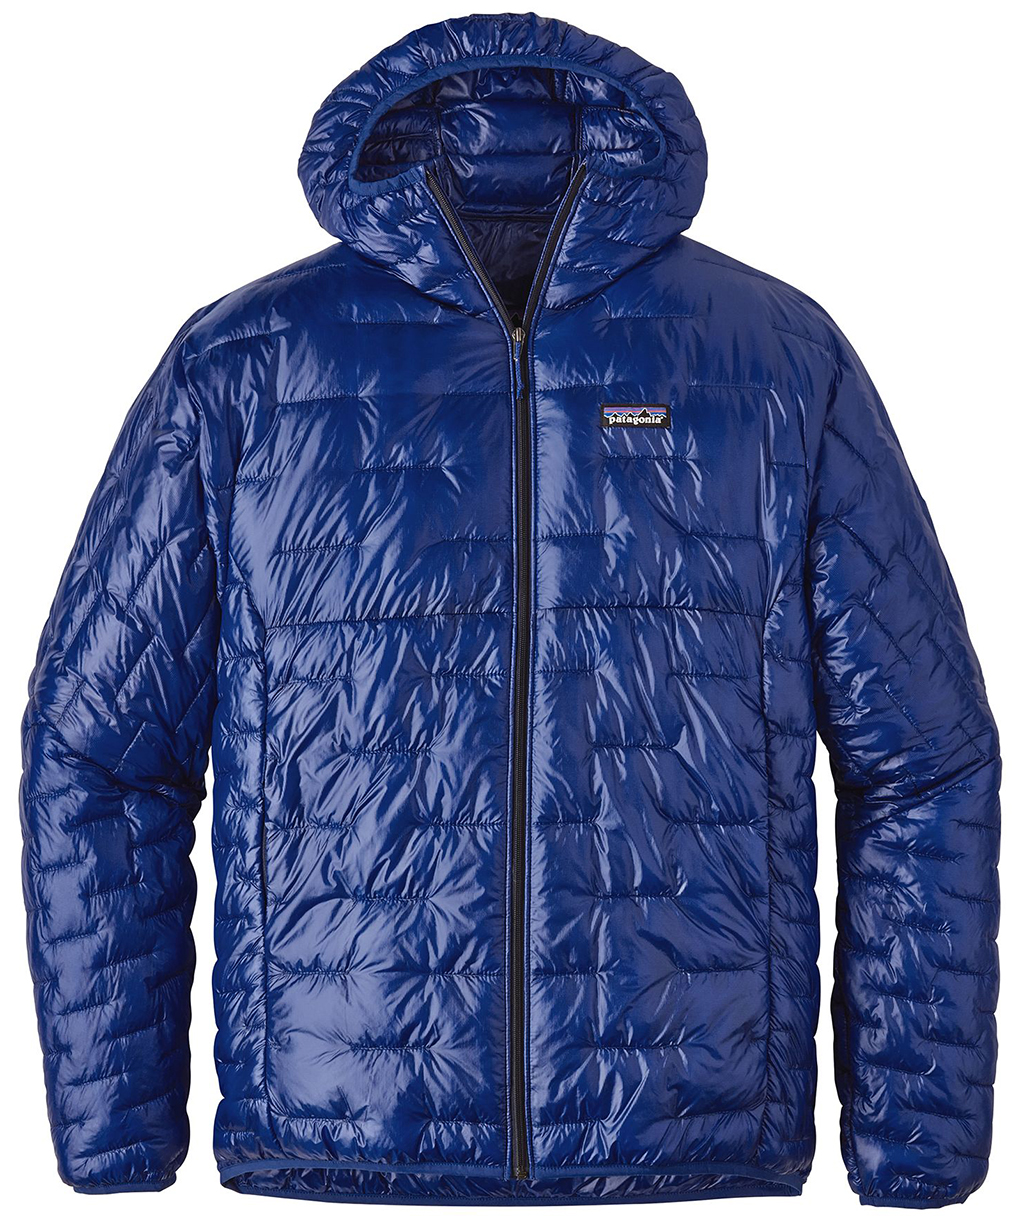 Luke Koppa and Sam Shaheen review the Patagonia Micro Puff for Blister Gear Review